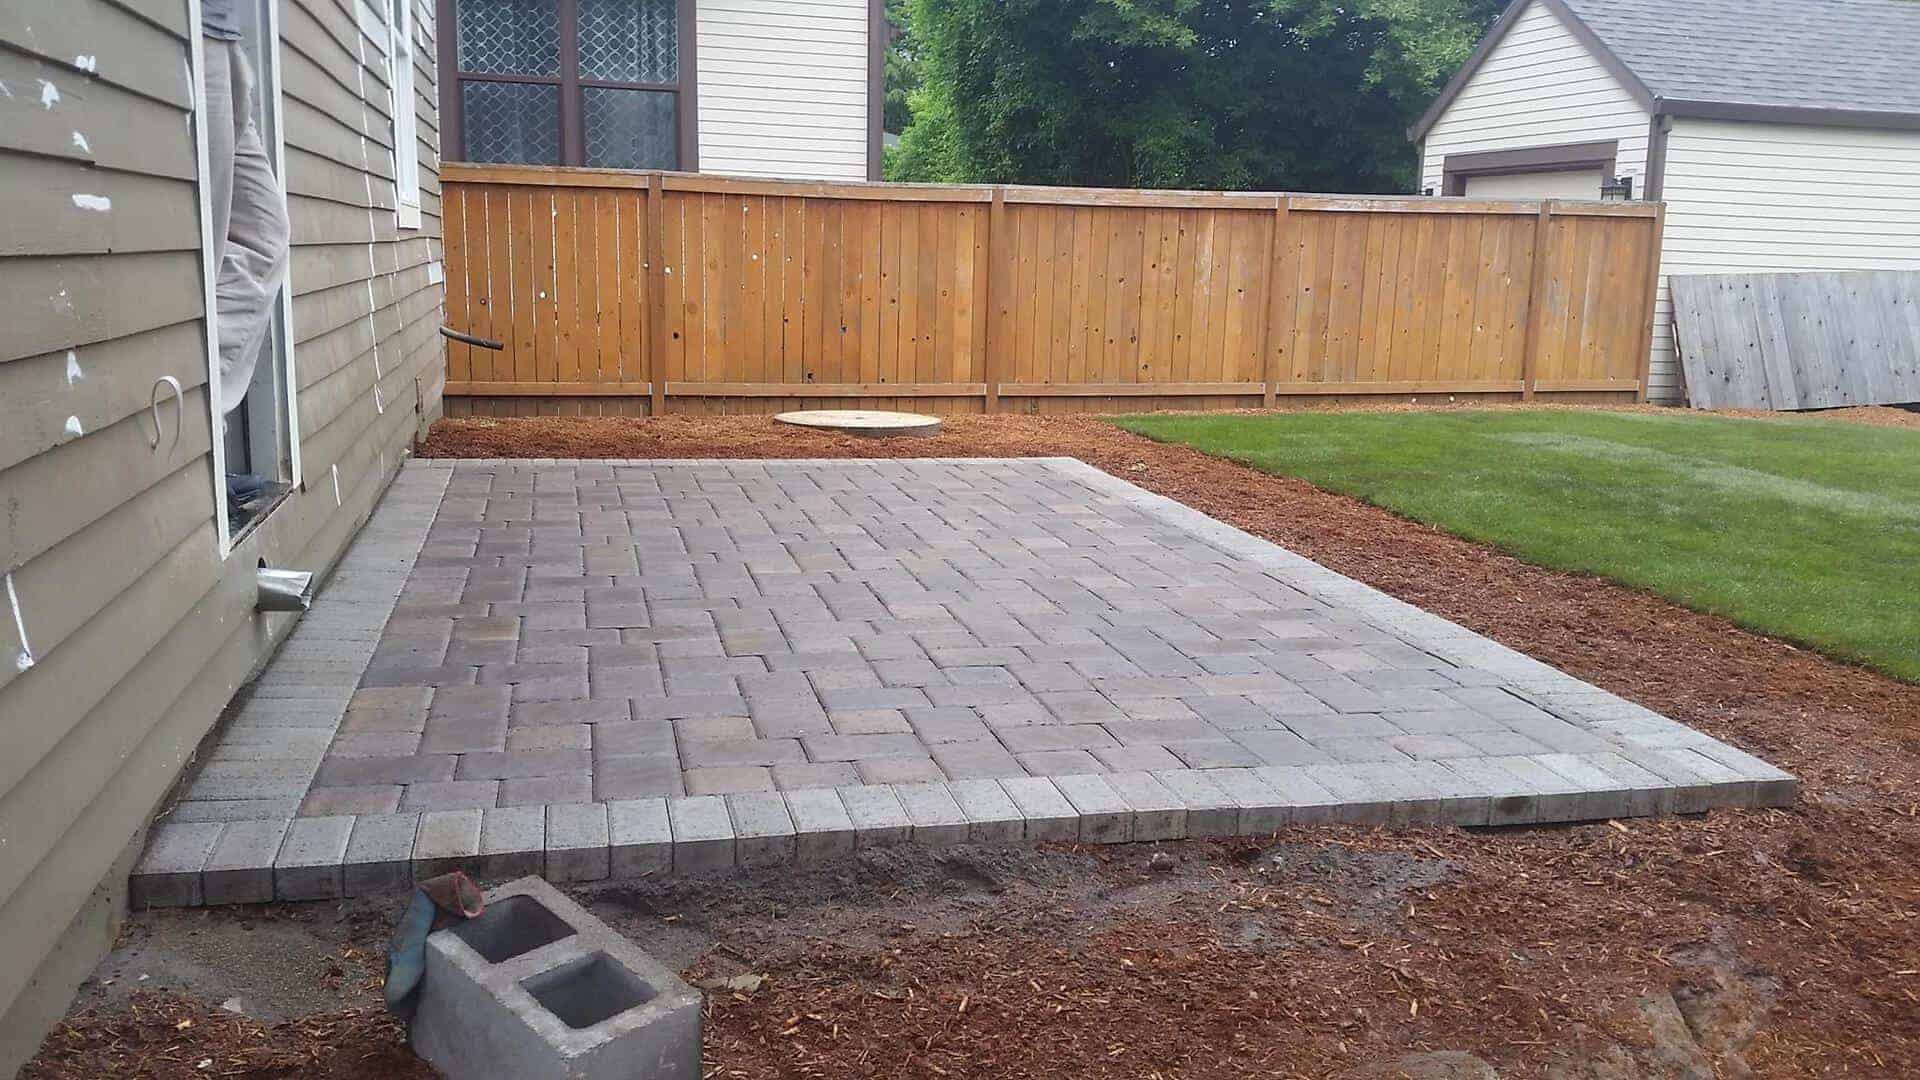 Back patio made out of grey and light brick concrete pavers. Perfectly alined forming an aesthetically pleasing square pattern.